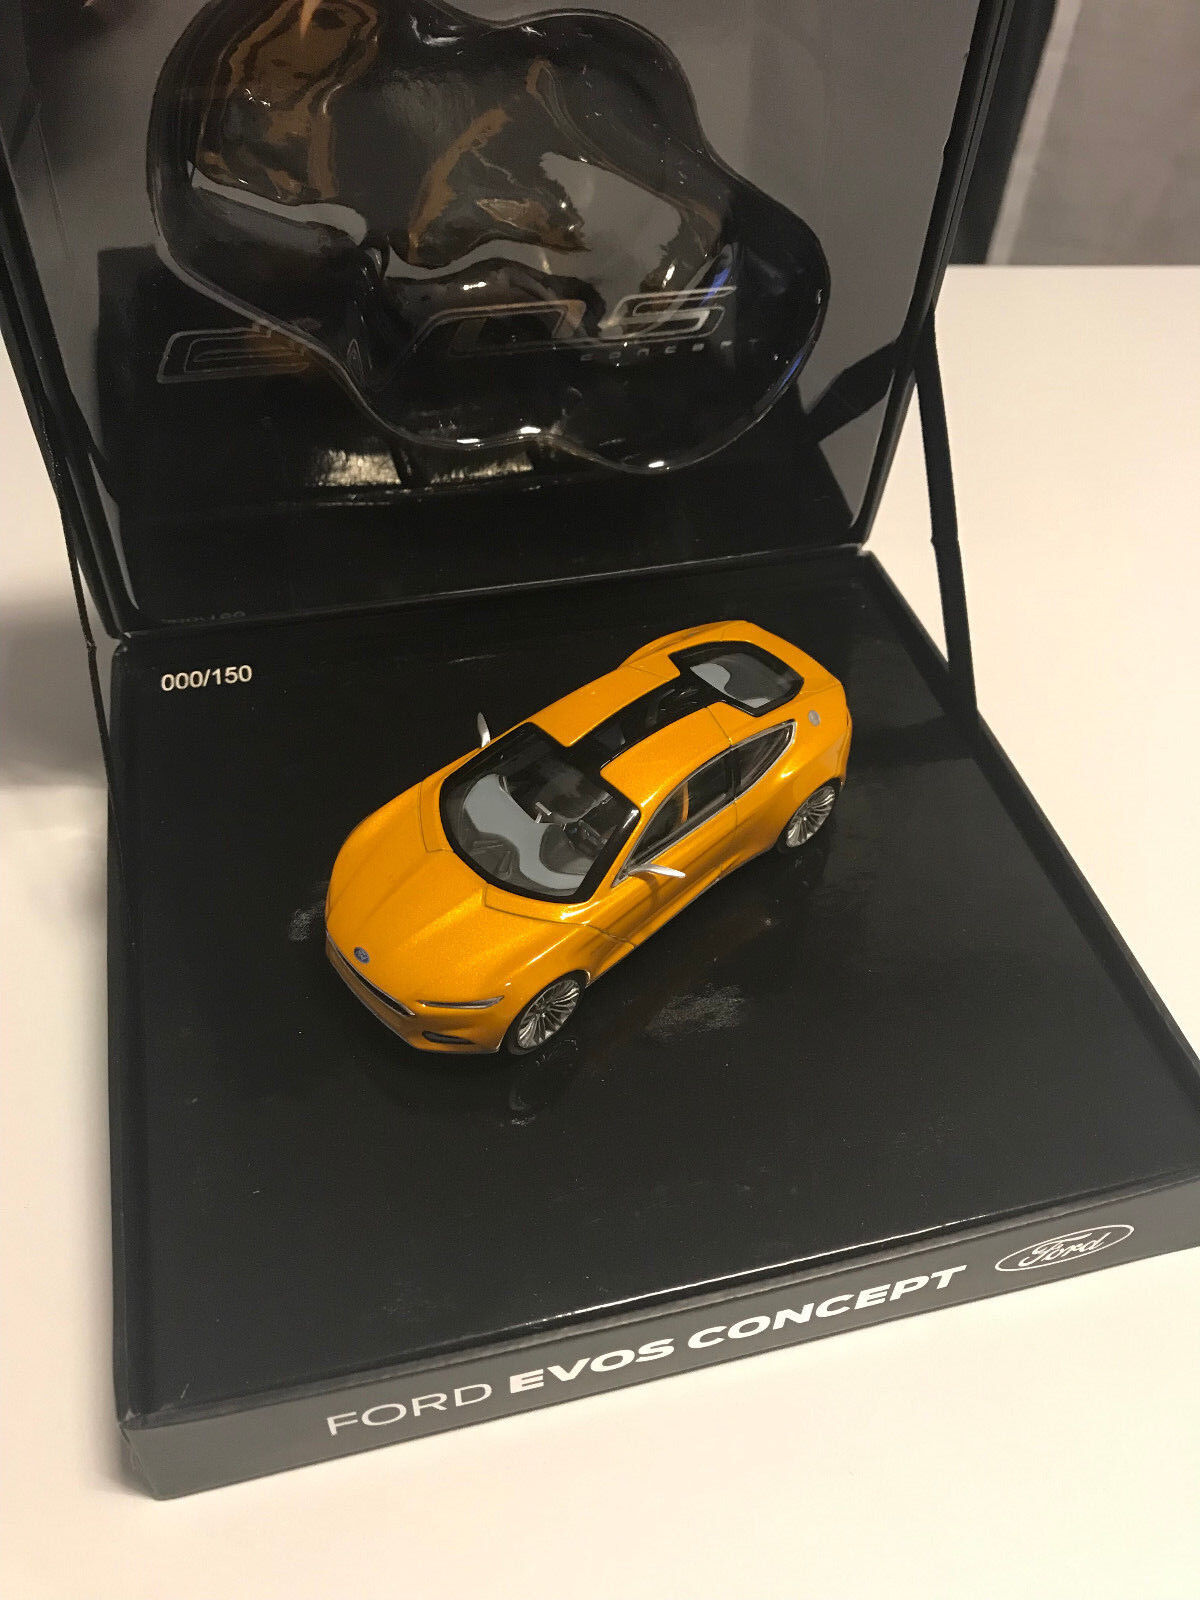 Ford Evos Concept 1/43 | Norev | Limited Edition Nr.000/150